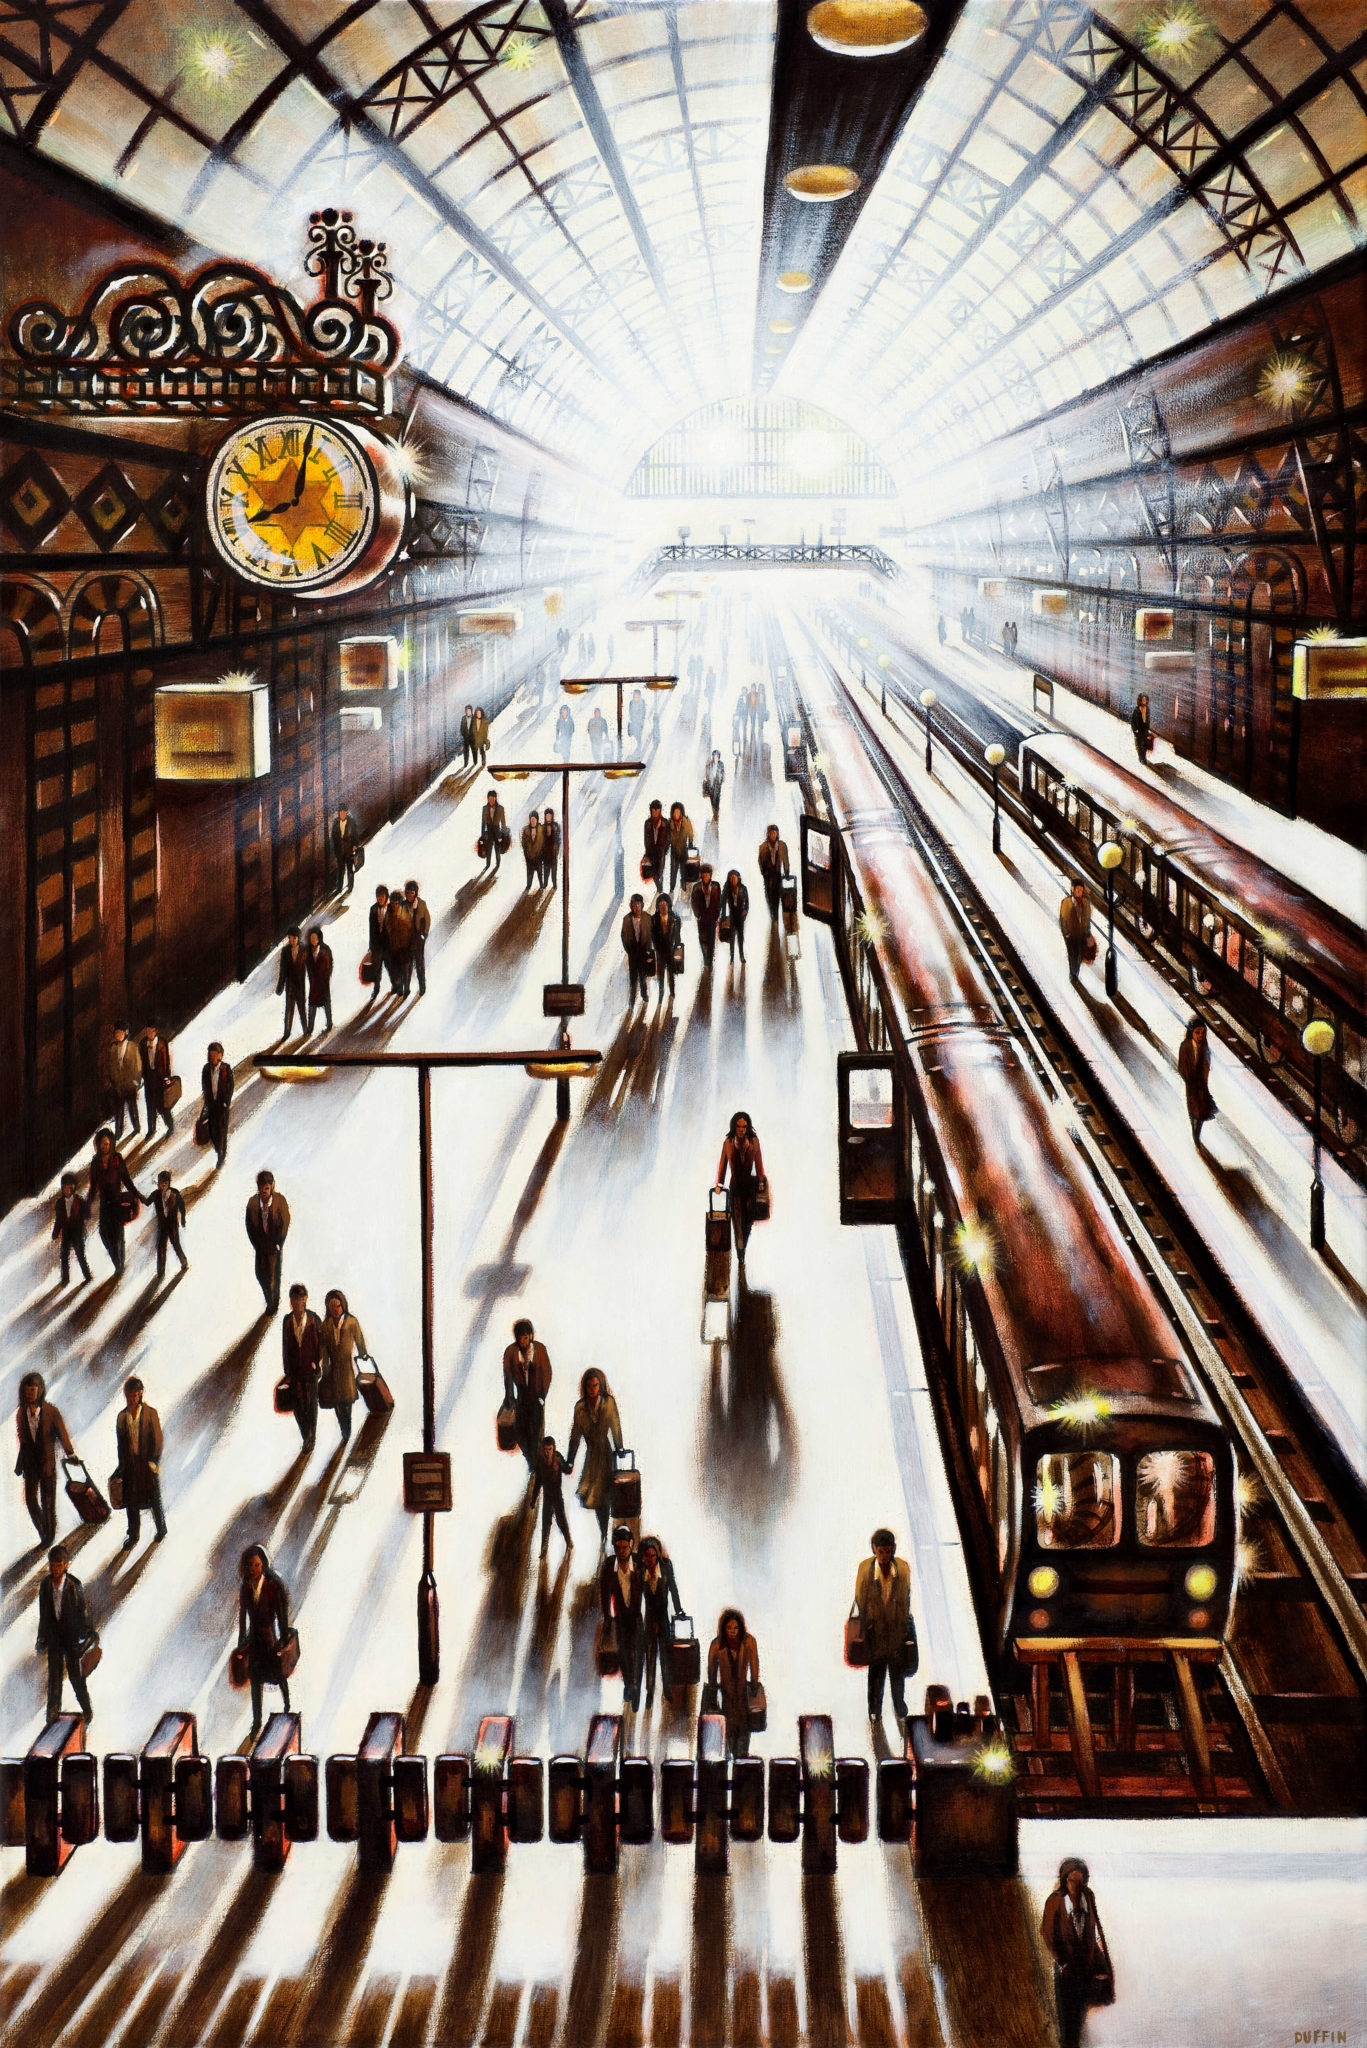 Another Arrival - King's Cross St Pancras Station - John Duffin